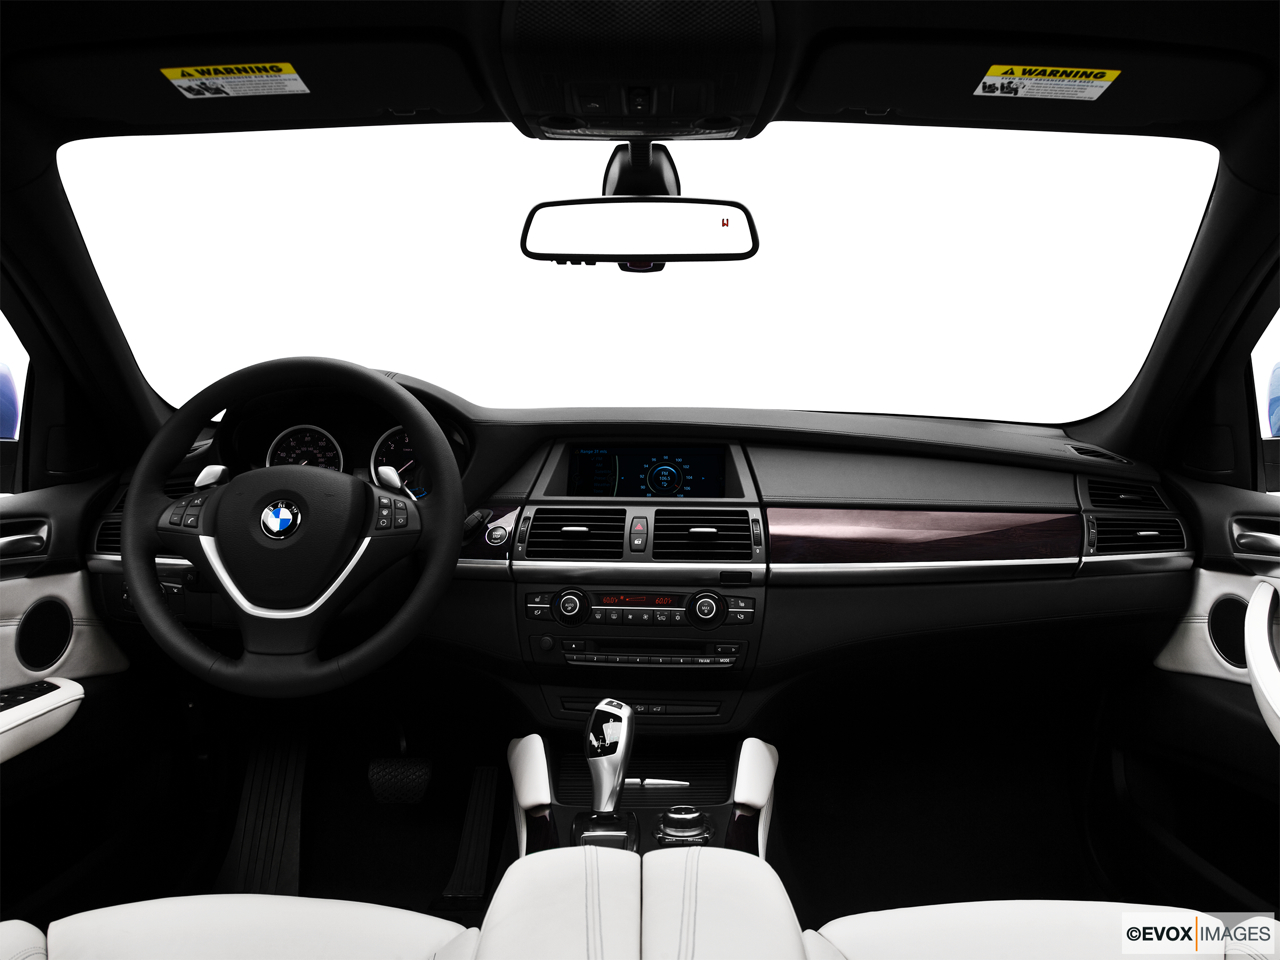 2010 BMW X6 Hybrid Base Centered wide dash shot